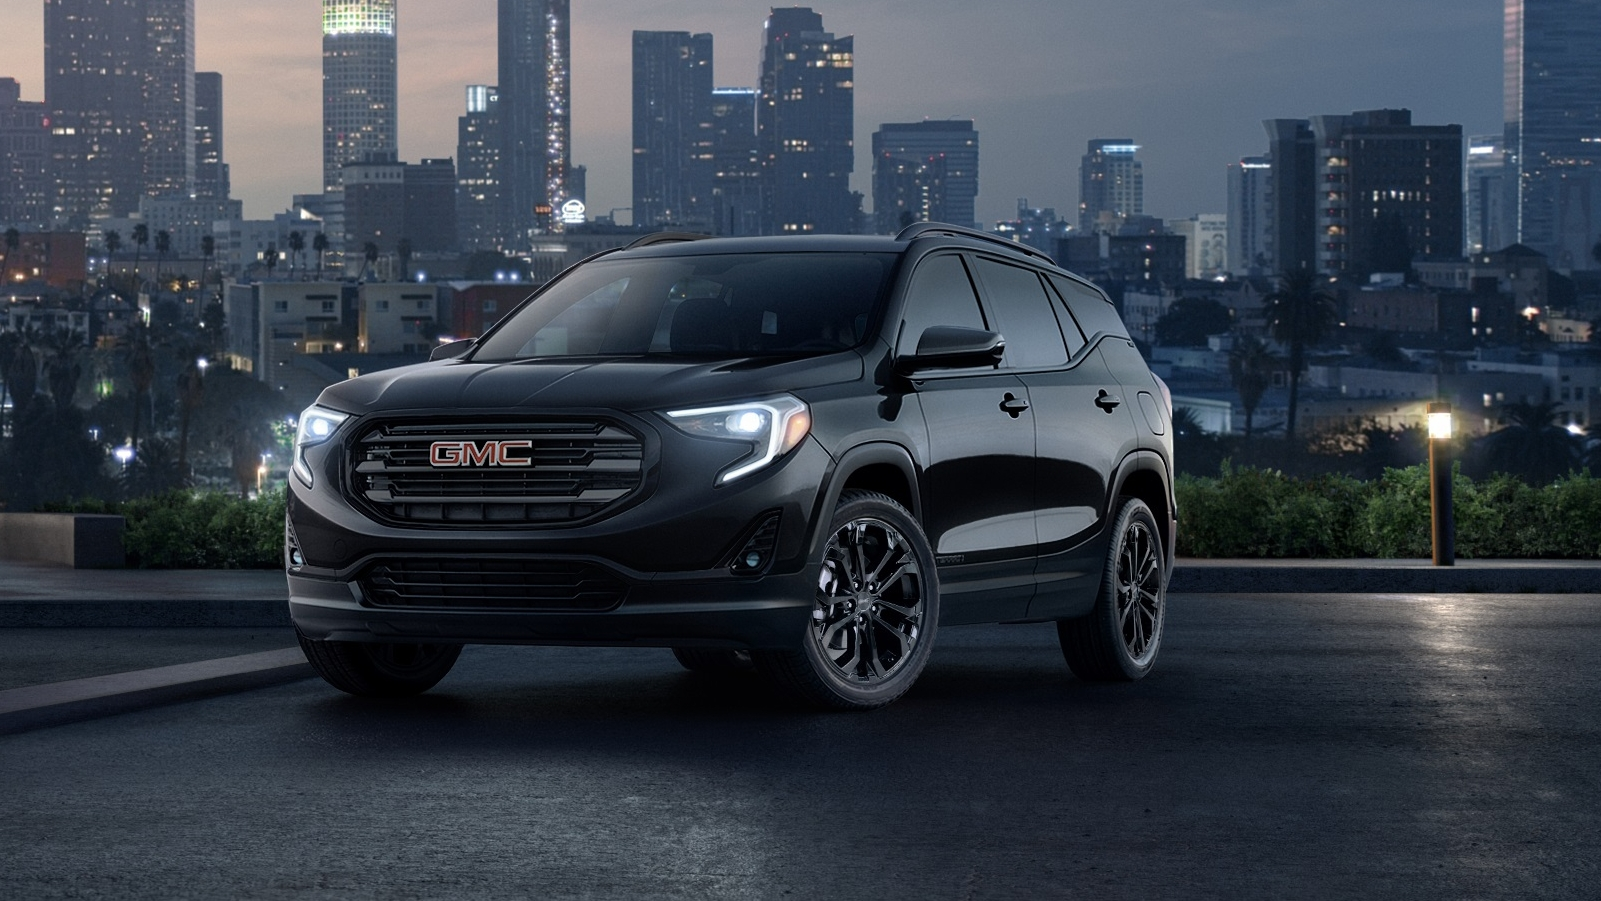 2019 Gmc Terrain Black Edition Top Speed